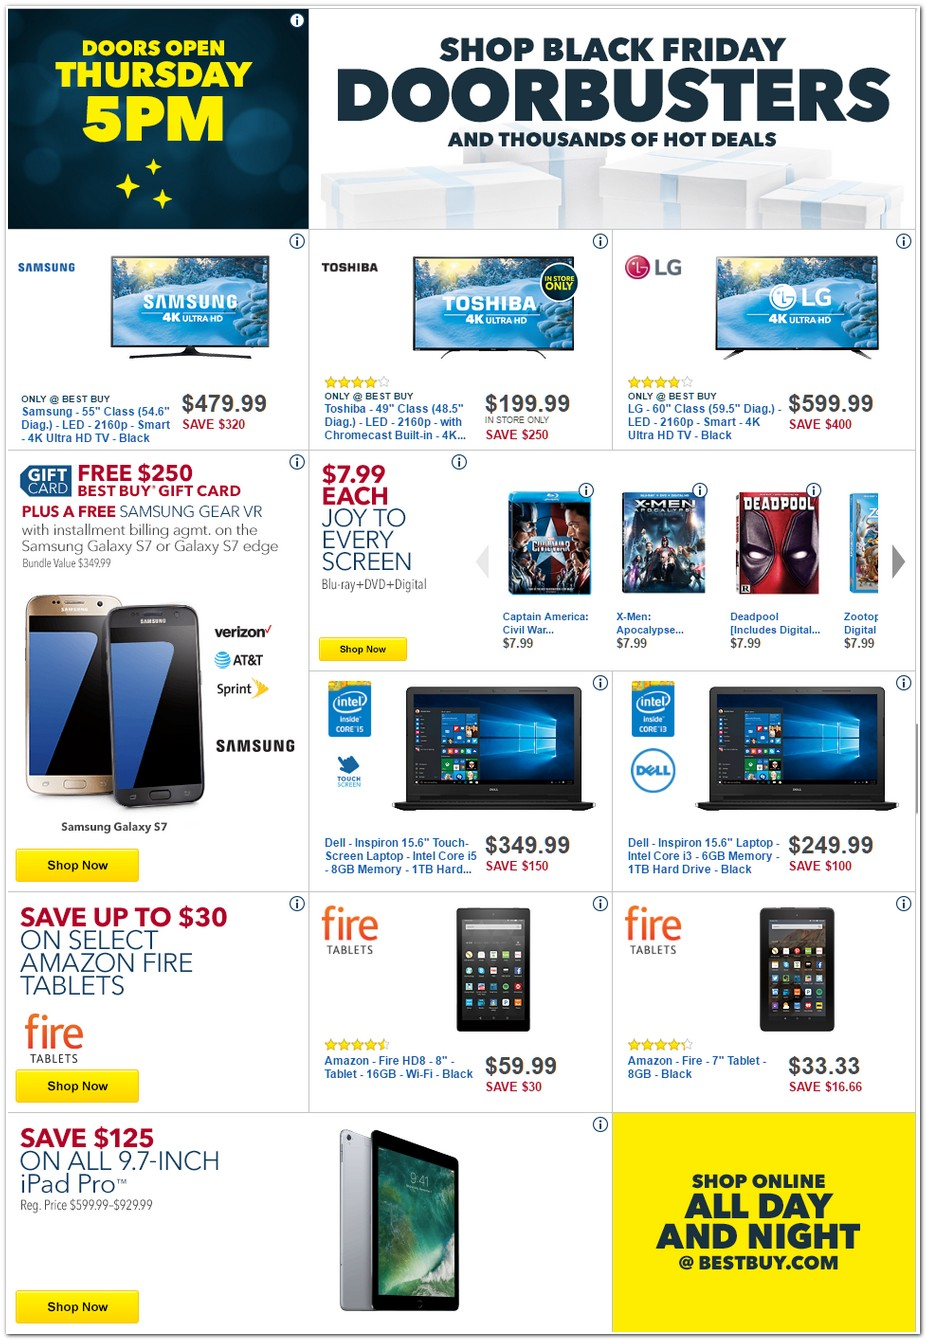 Best Buy 2016 Black Friday Ad Black Friday Archive Black Friday Ads From The Past